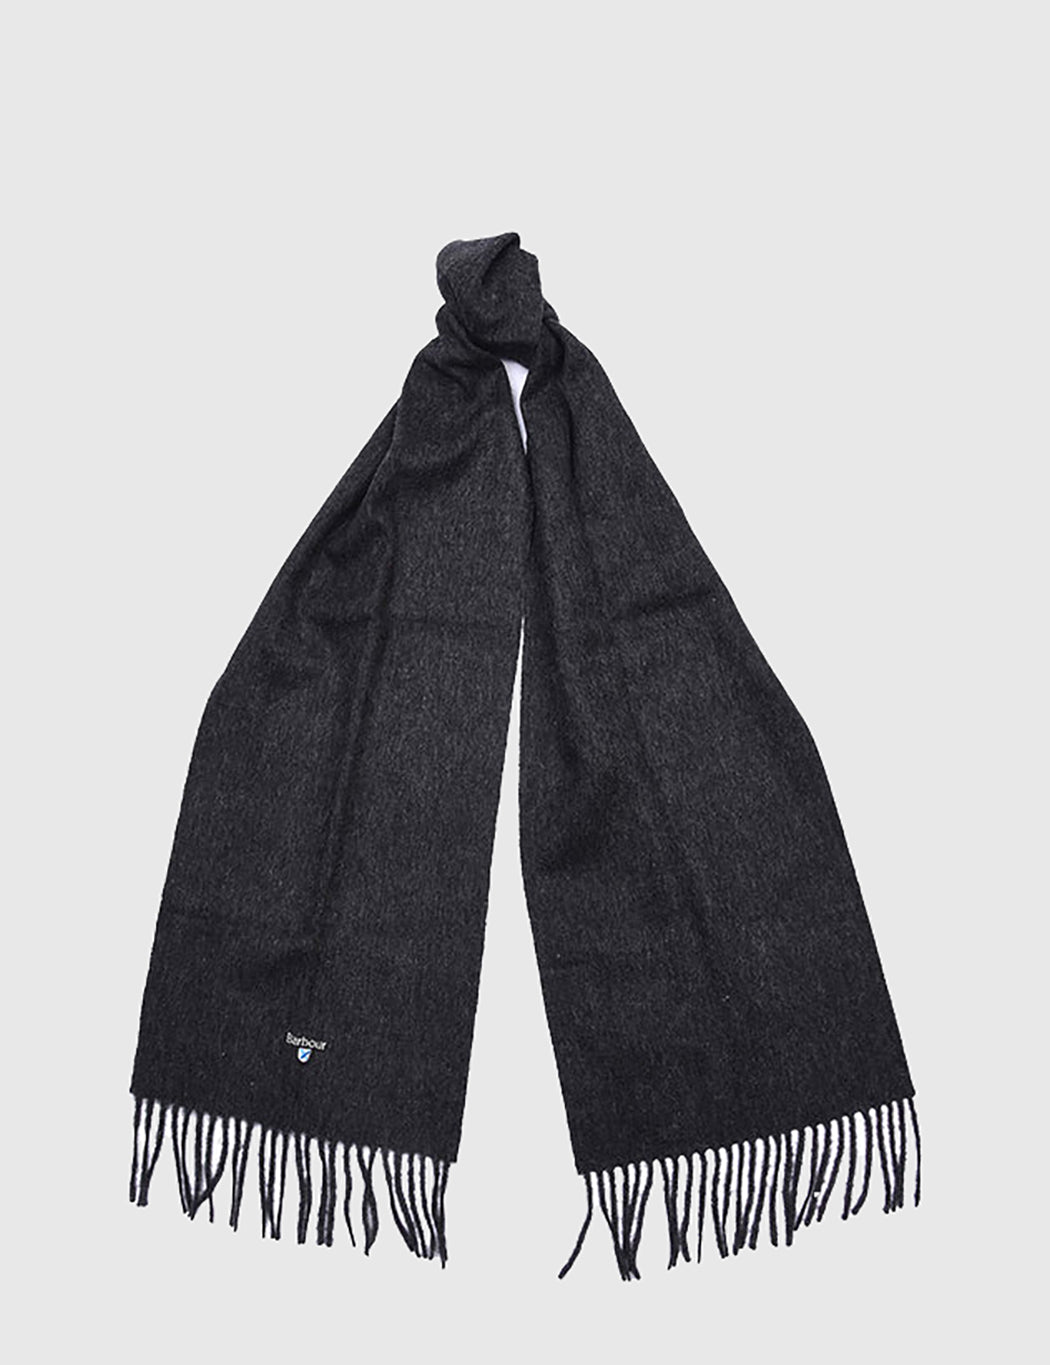 Barbour Plain Lambswool Scarf - Charcoal Grey